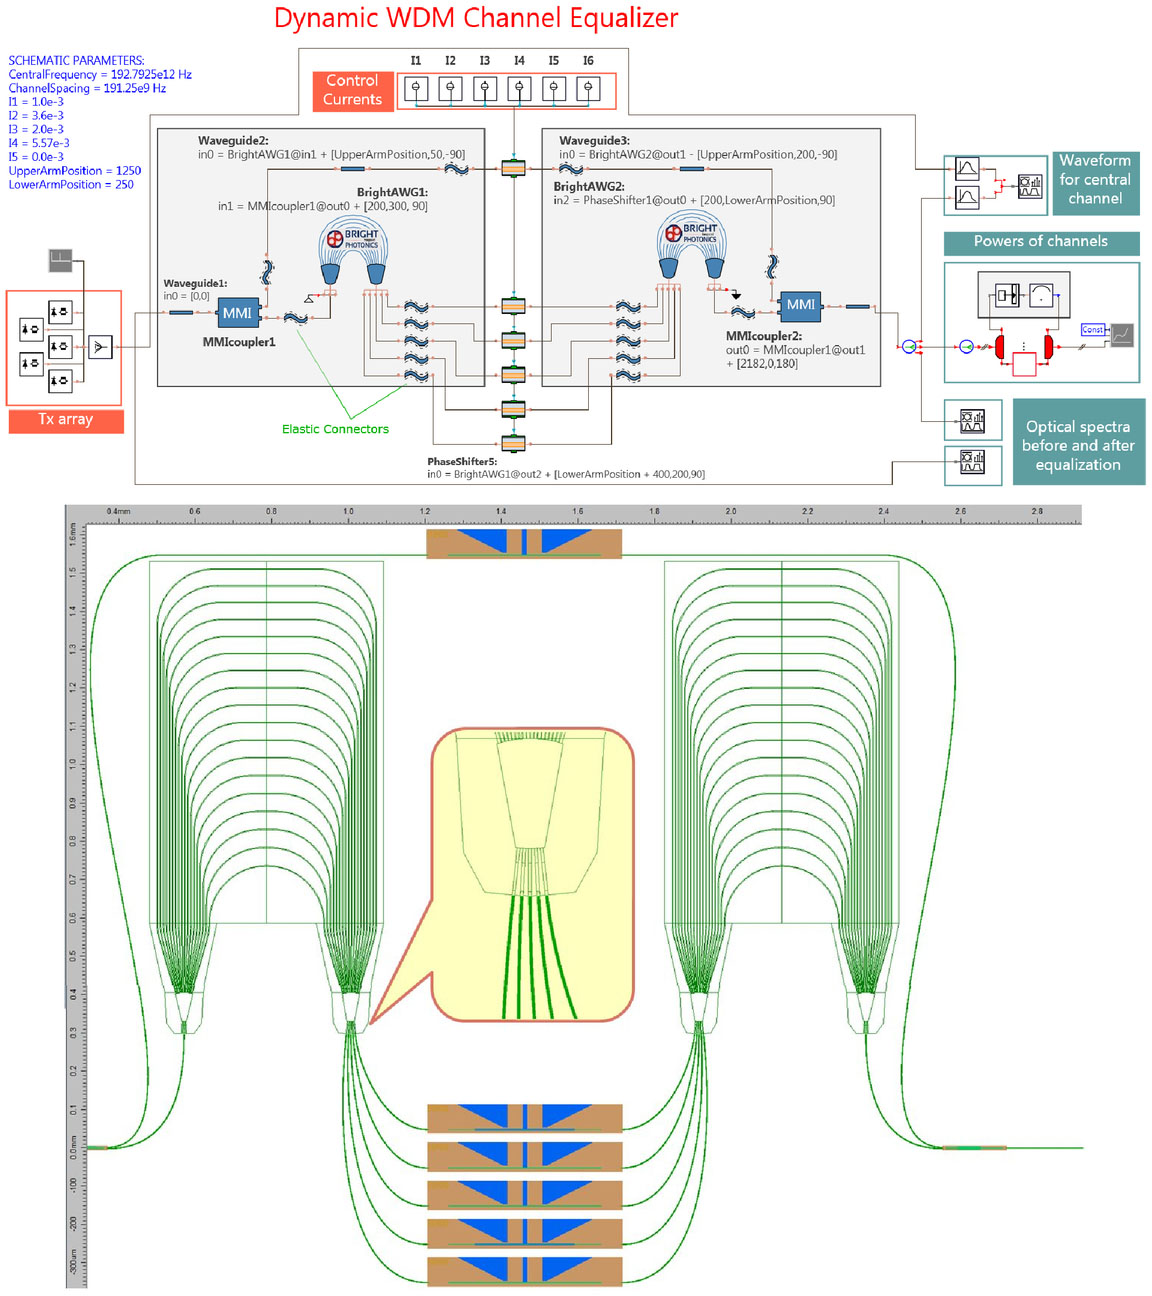 Rapid virtual prototyping of complex photonic integrated circuits